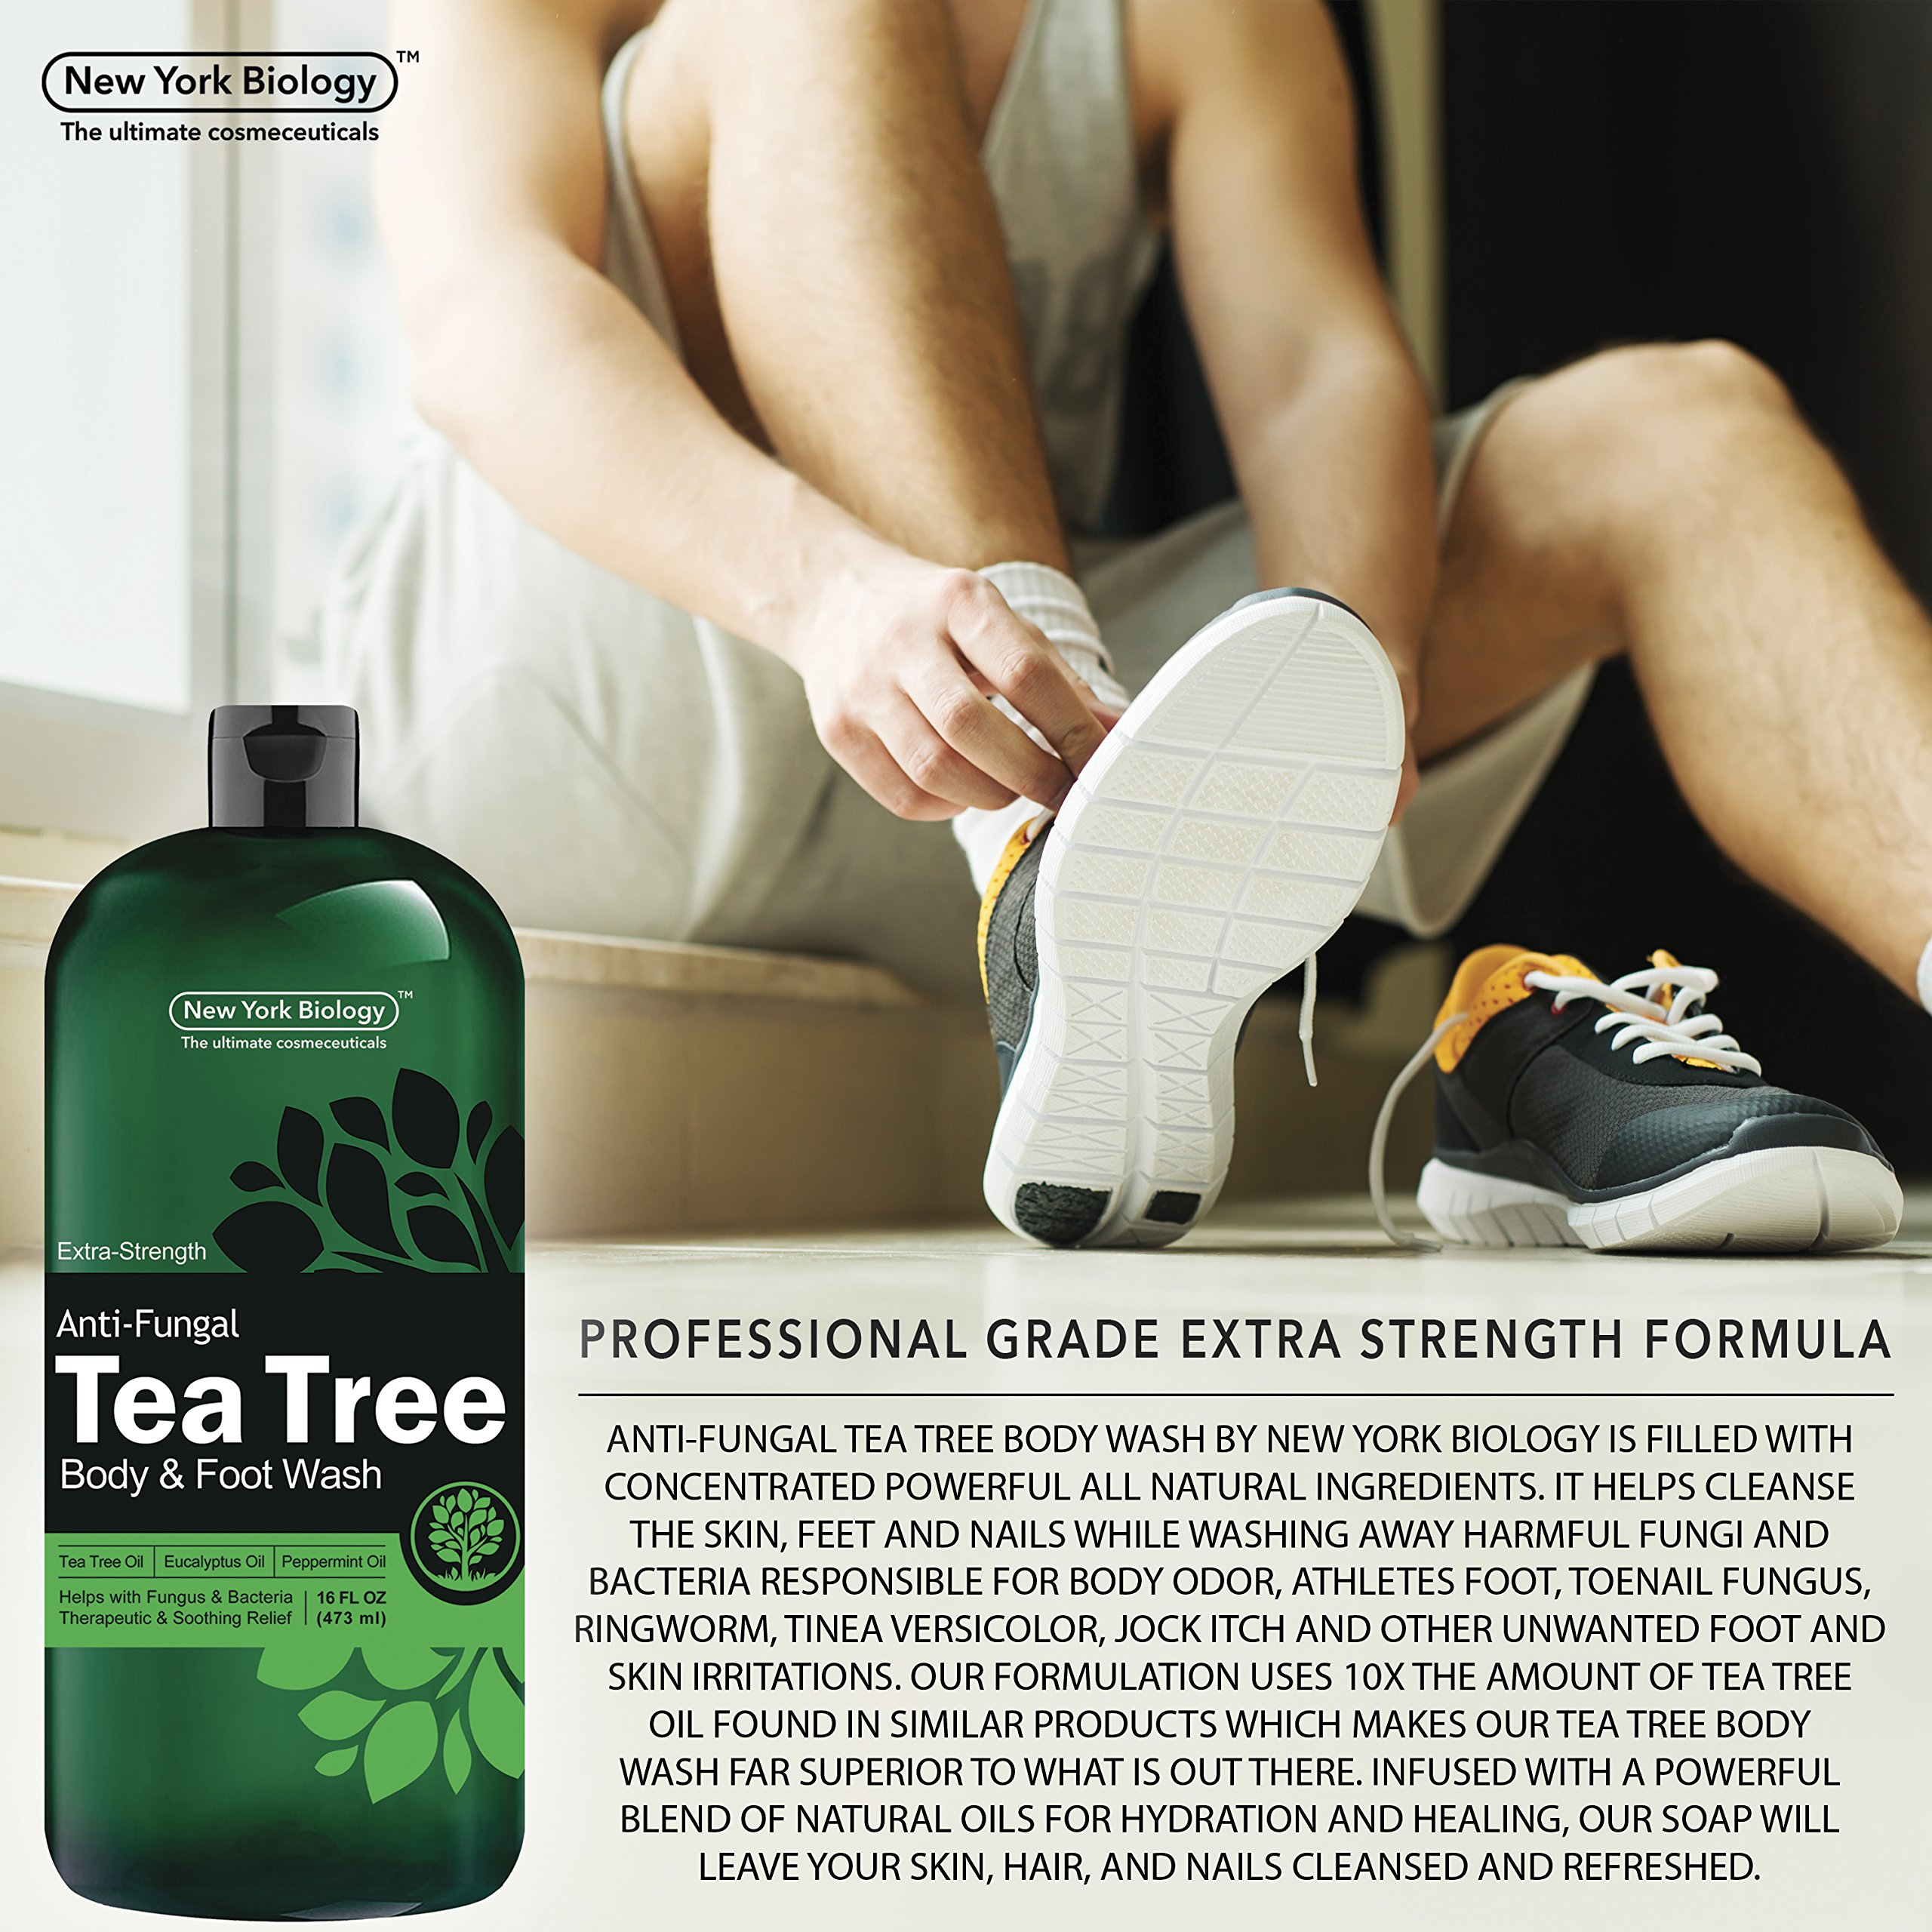 Antifungal Tea Tree Oil Body Wash – HUGE 16 OZ – 100% Pure & Natural - Extra Strength Professional Grade - Helps Soothe Toenail Fungus, Athlete Foot, Body Itch, Jock Itch & Eczema by New York Biology (Image #4)